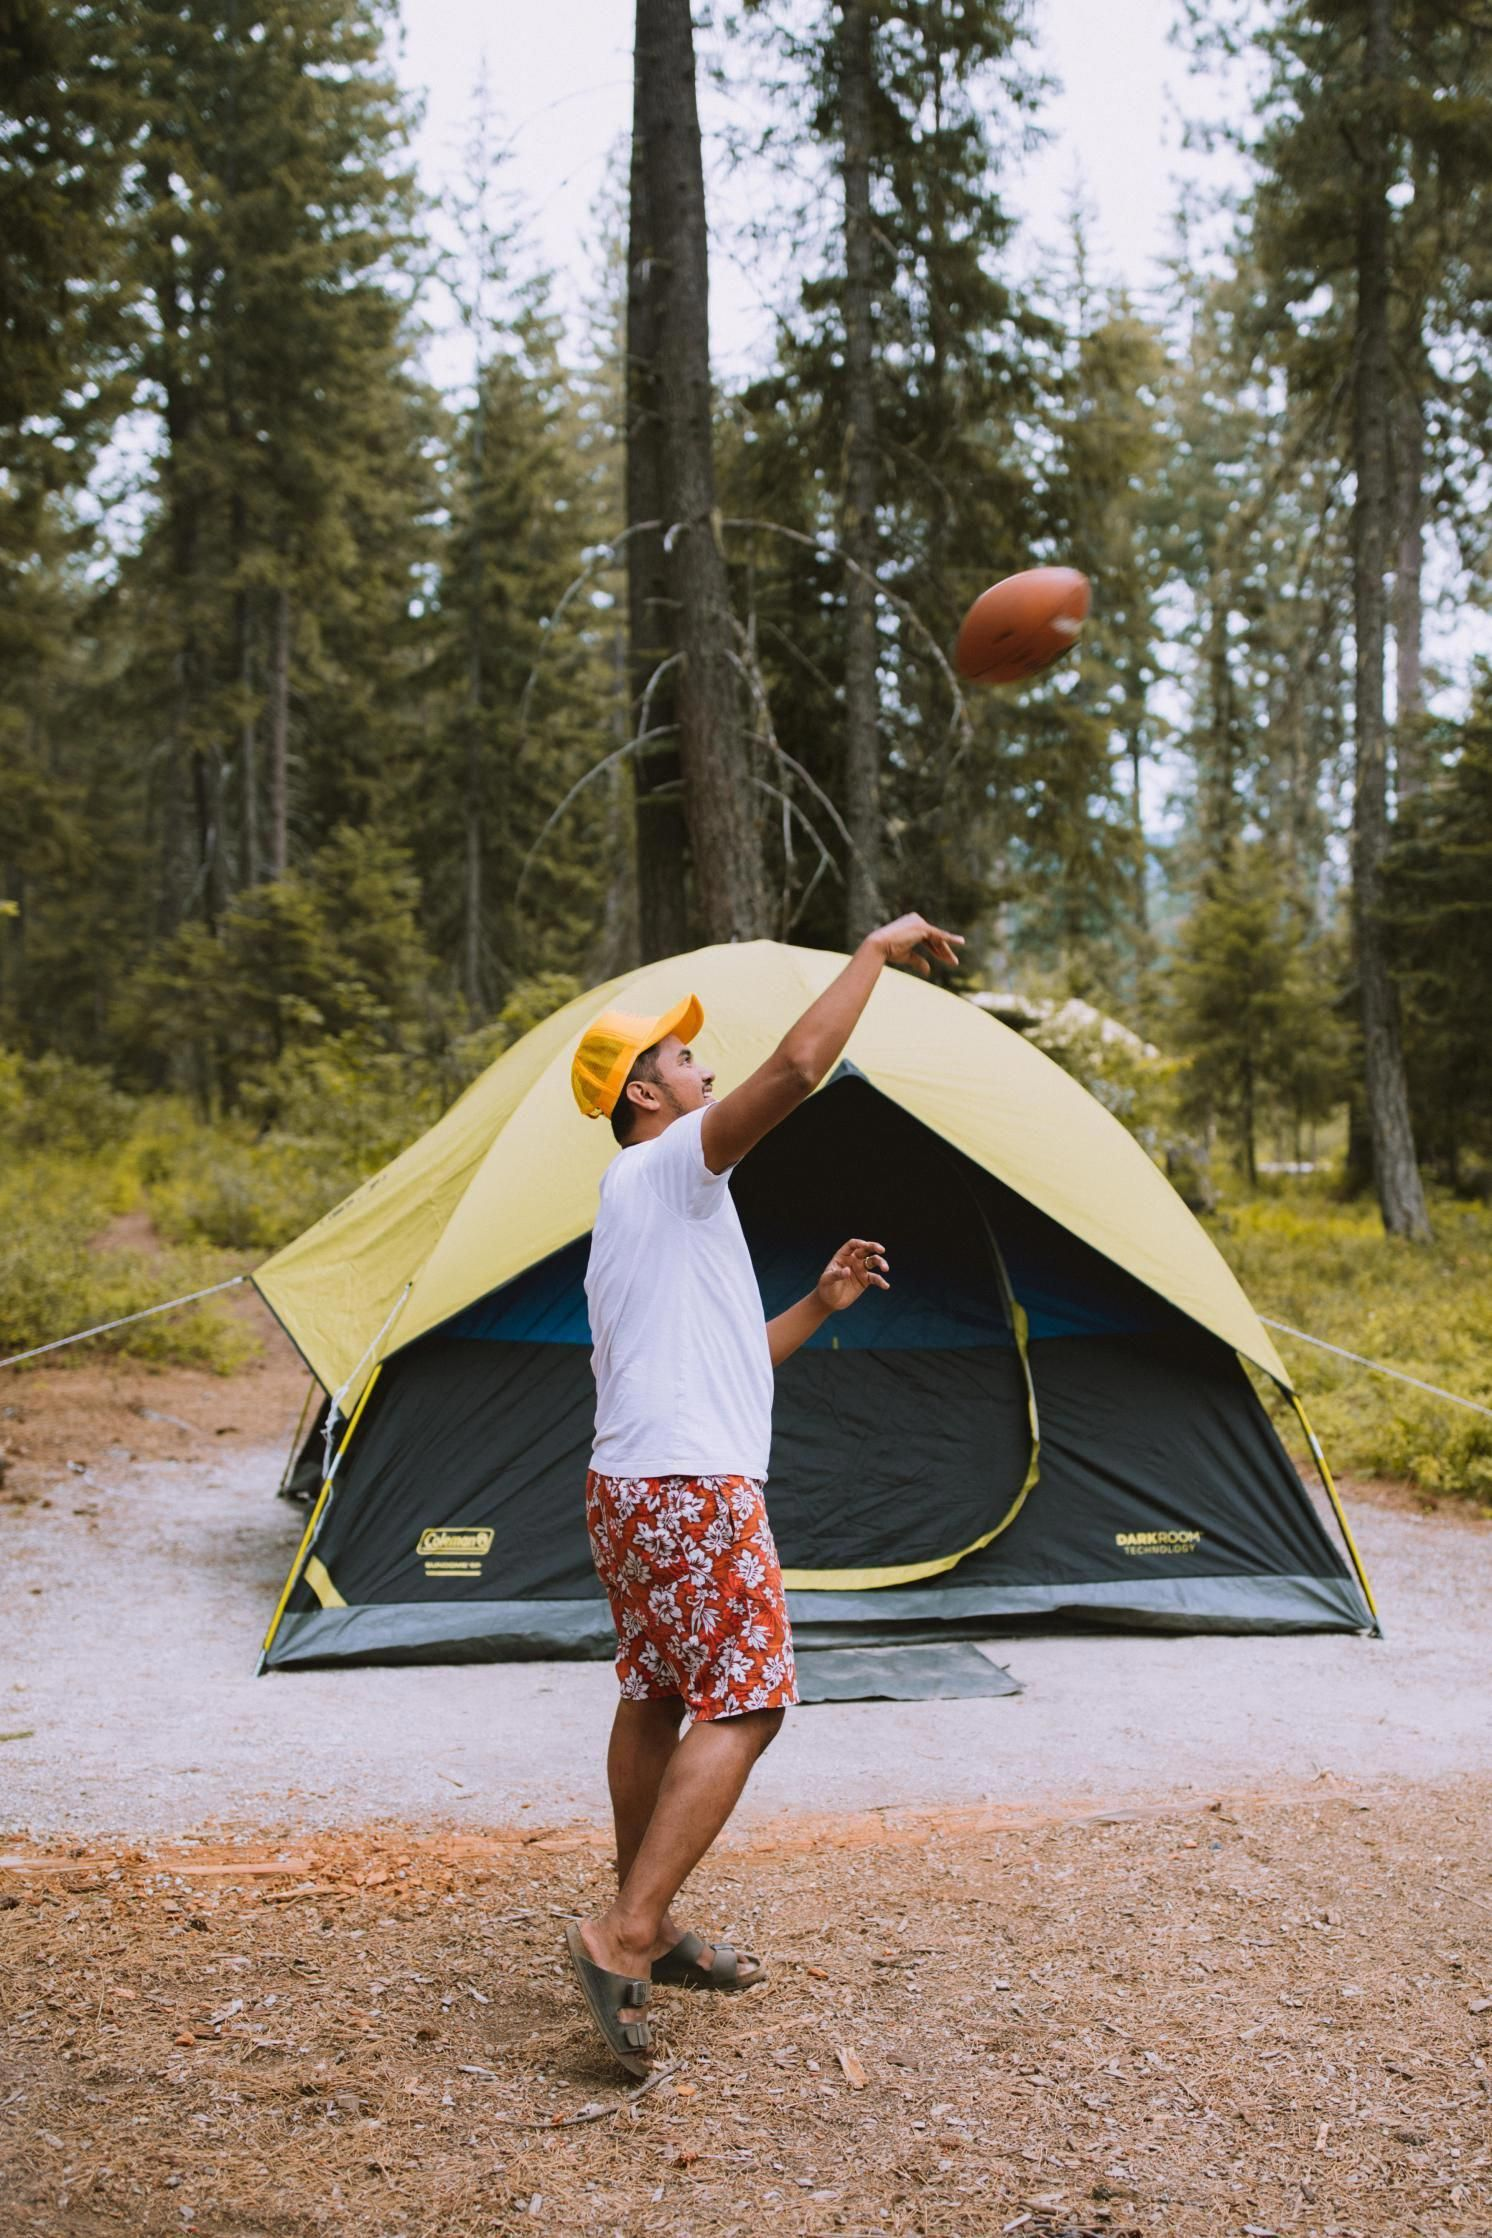 The 10 Basic Essentials You Need On Every Camping Checklist #essentialsforcamping